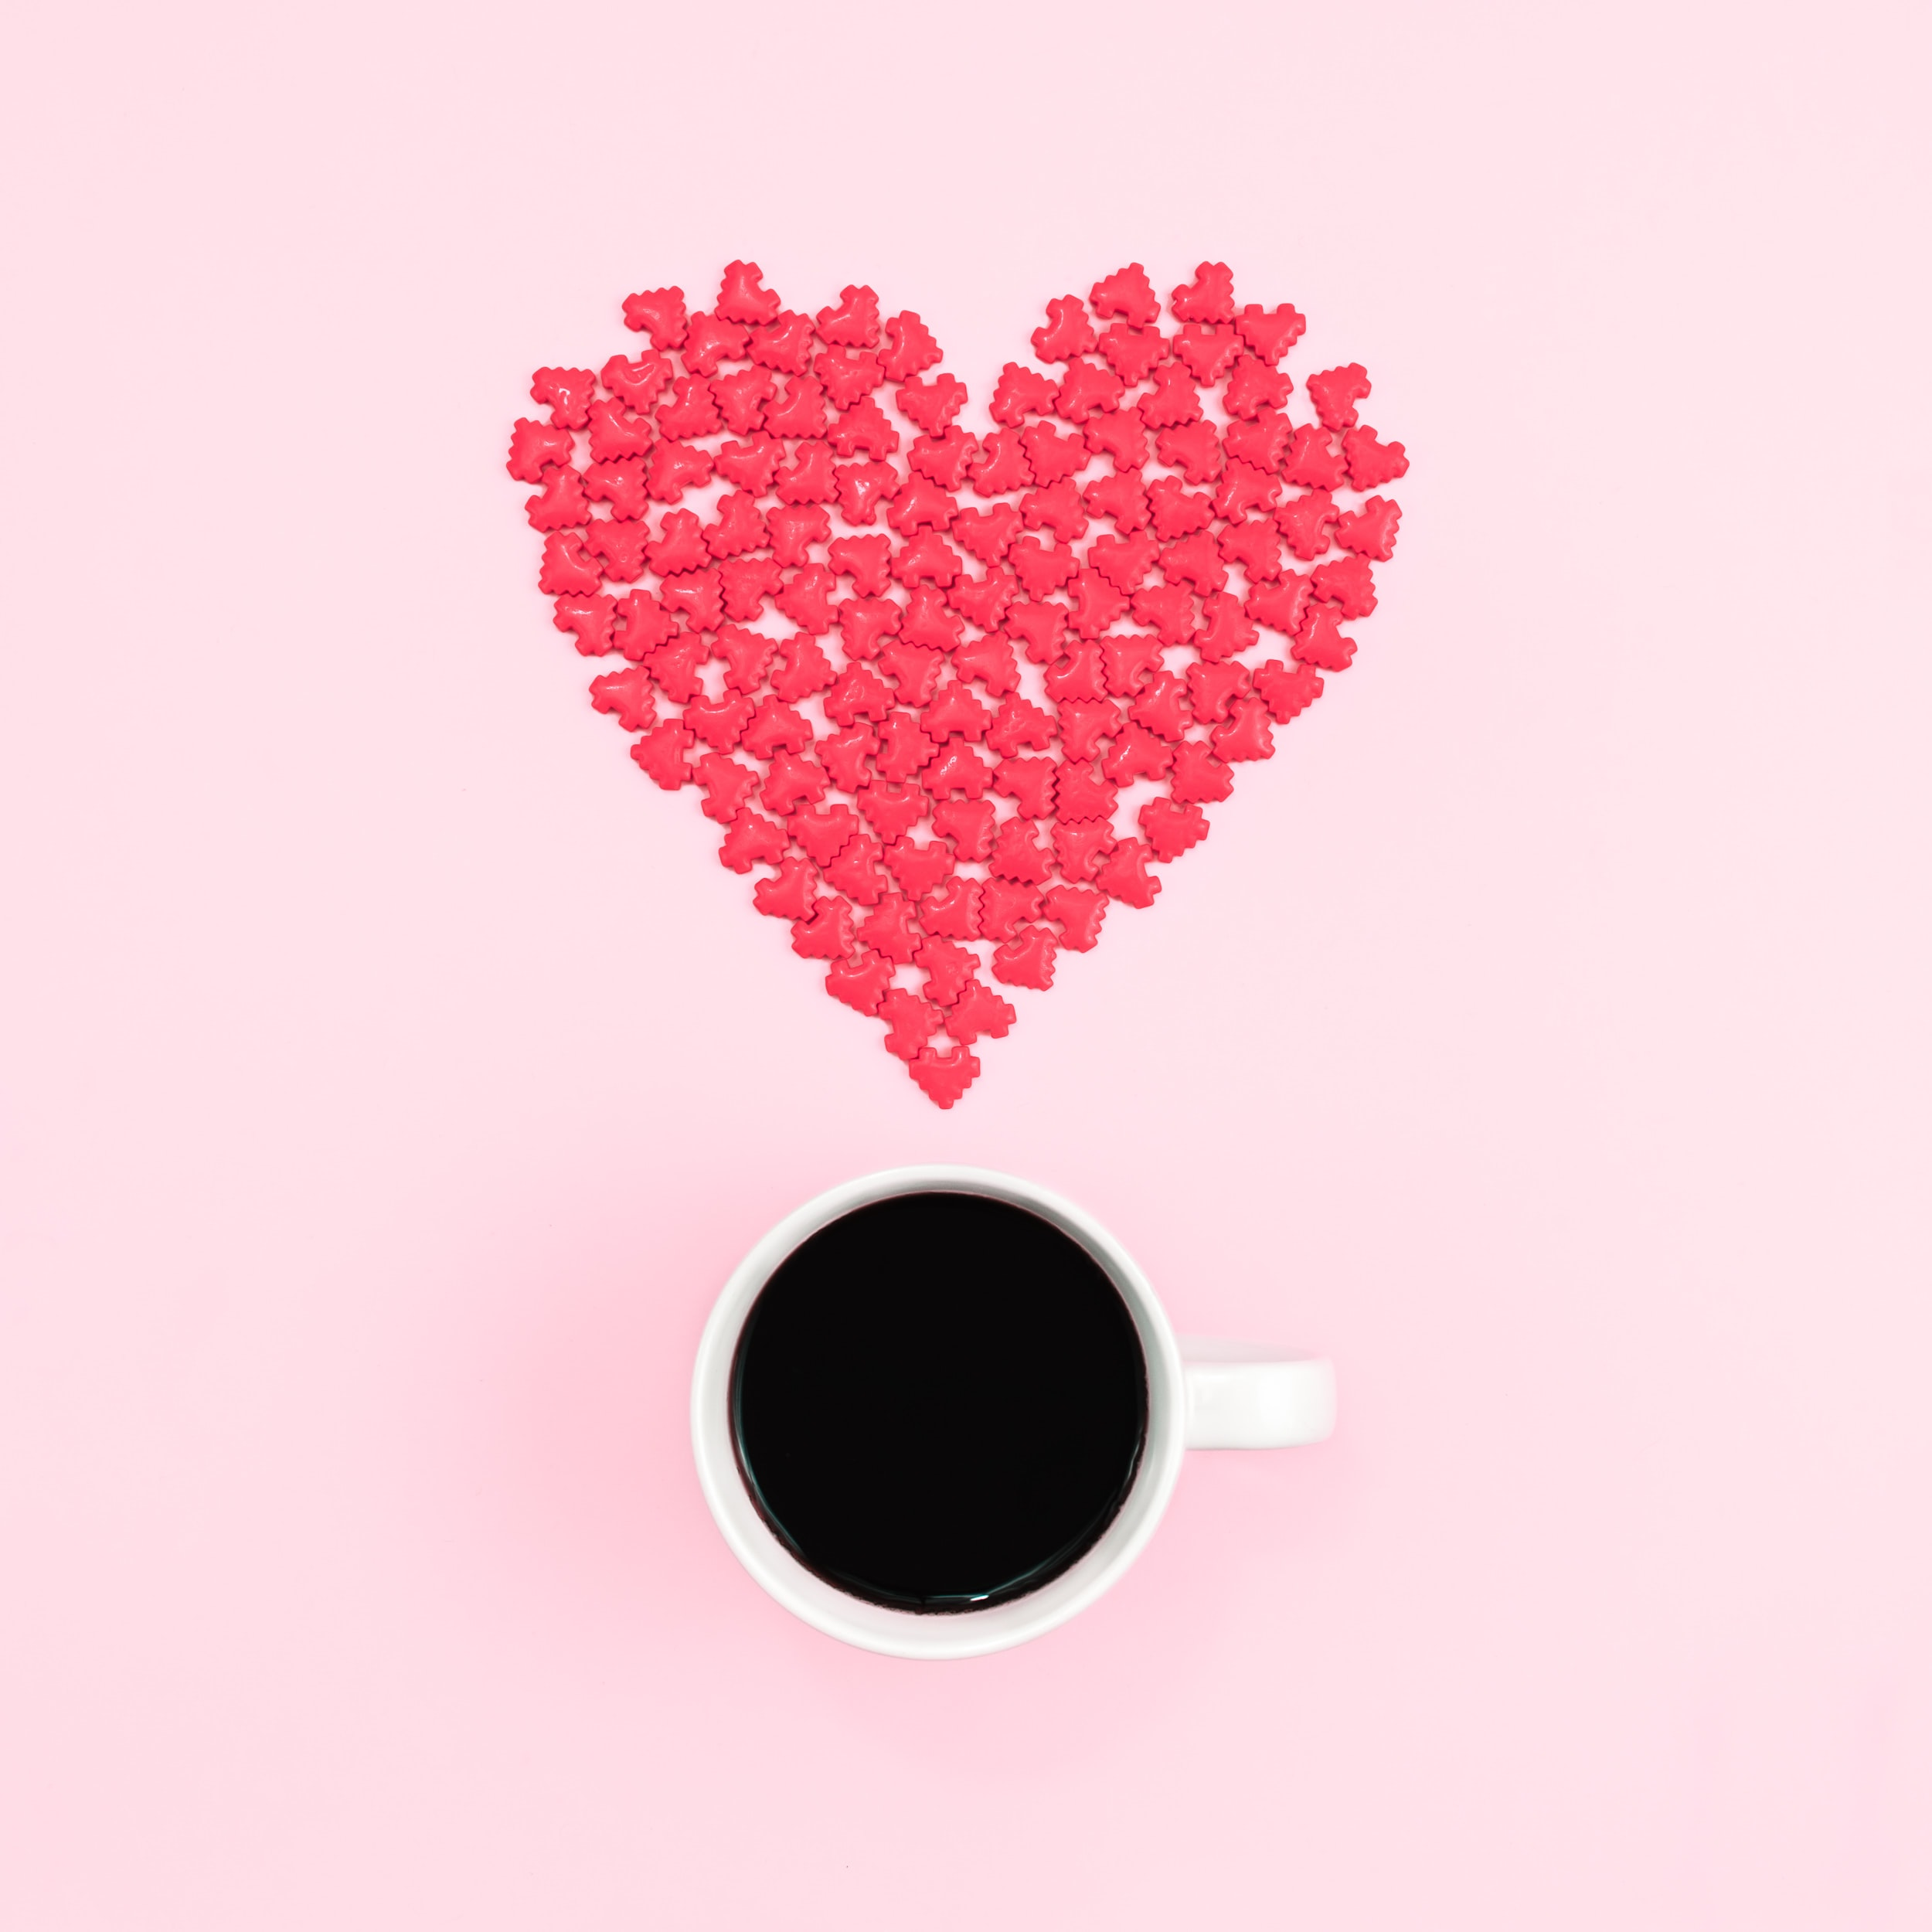 Espresso your love with our Valentines Coffee recipes!